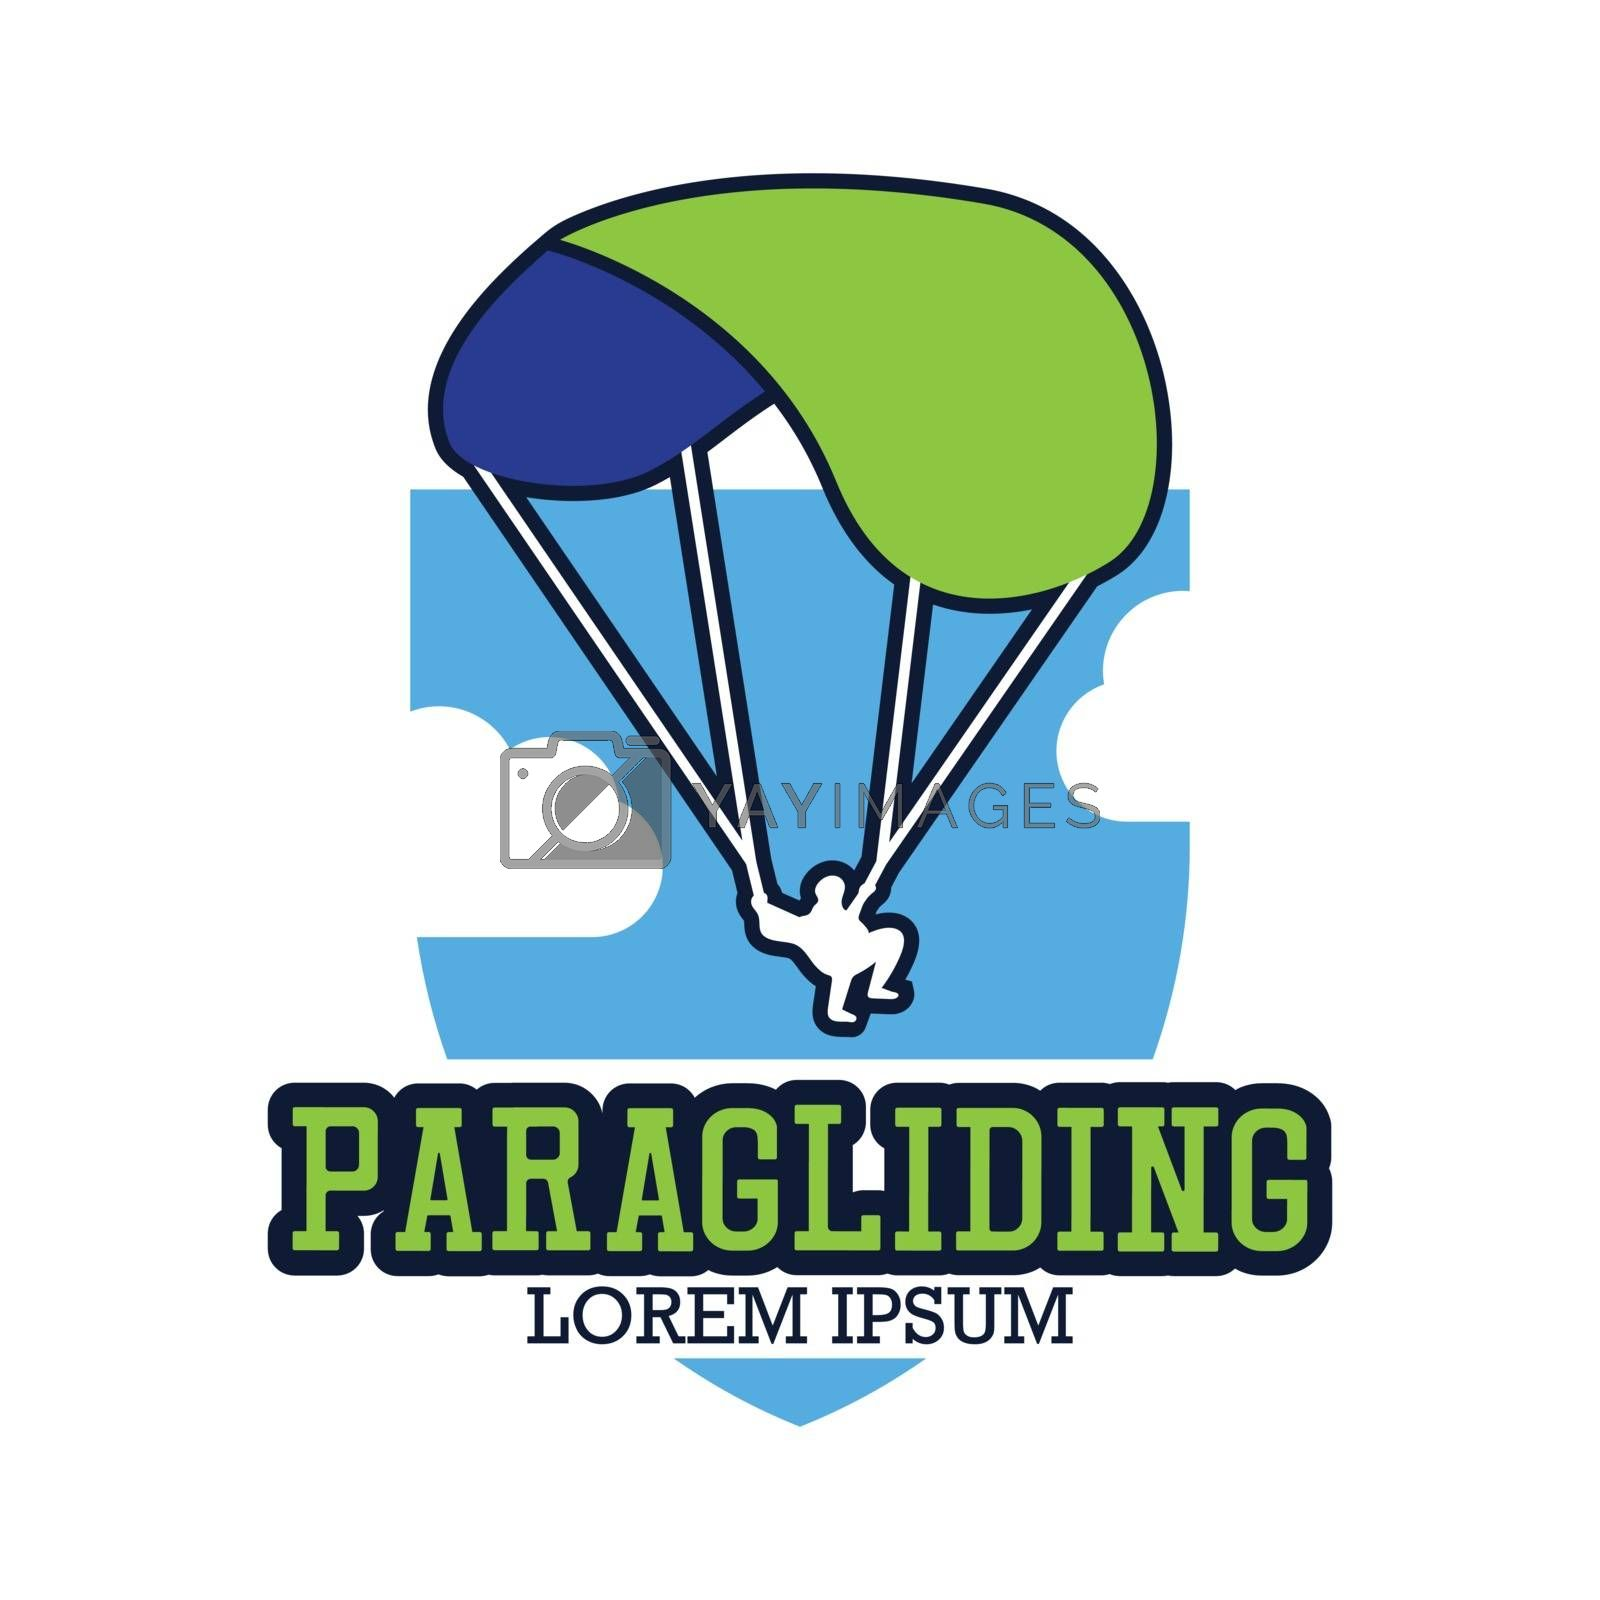 paragliding icon with text space for your slogan / tag line, vector illustration